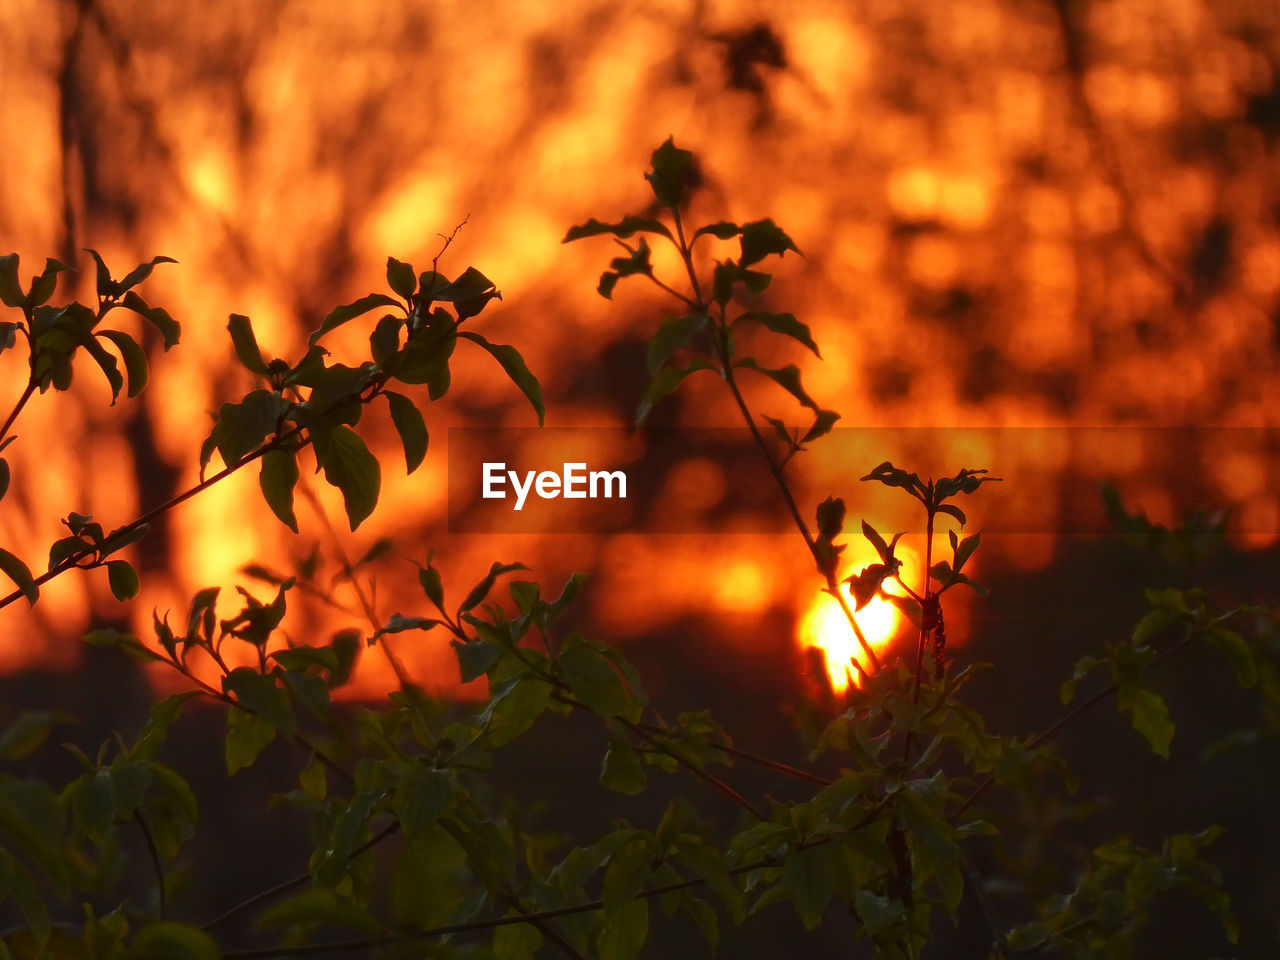 orange color, plant, plant part, leaf, nature, no people, growth, beauty in nature, close-up, sunset, focus on foreground, tree, outdoors, autumn, tranquility, night, glowing, change, sky, burning, leaves